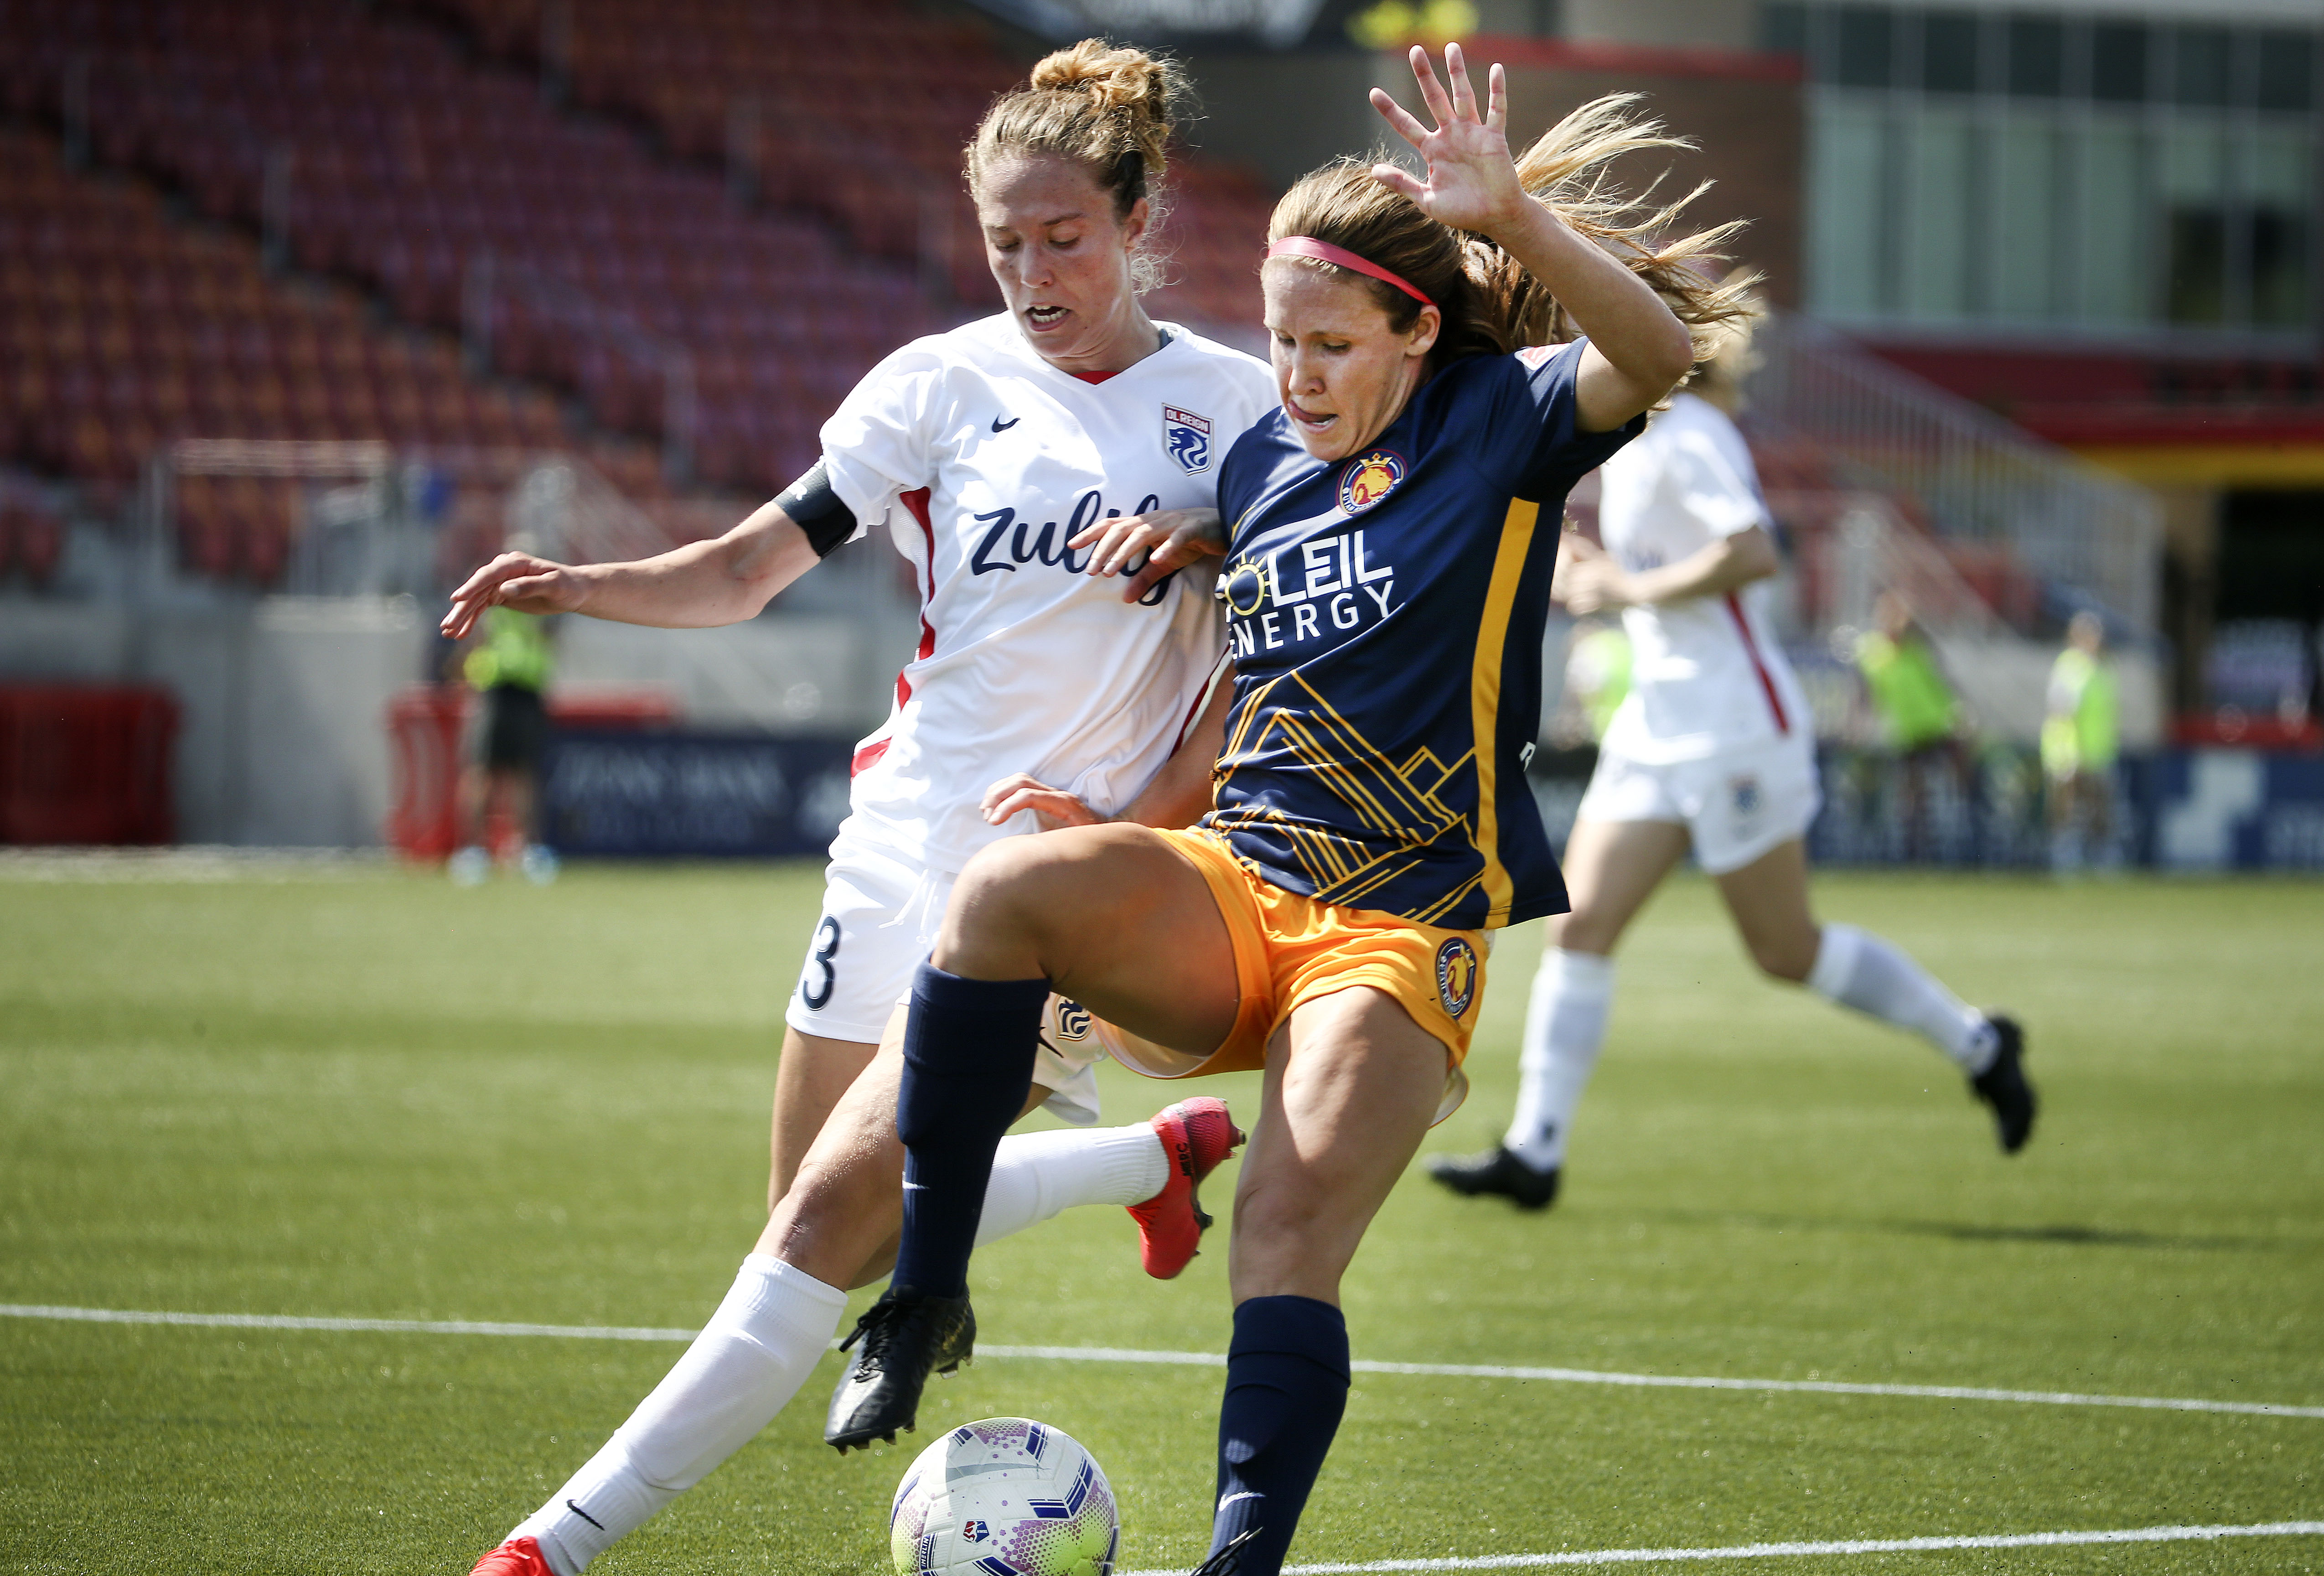 OL Reign player Celia Jimenez Delgado, left, and the Utah Royals' Mallory Weber compete for the ball in the 2020 NWSL Challenge Cup at Zions Bank Stadium in Herriman on Wednesday, July 8, 2020. The Reign won 1-0.